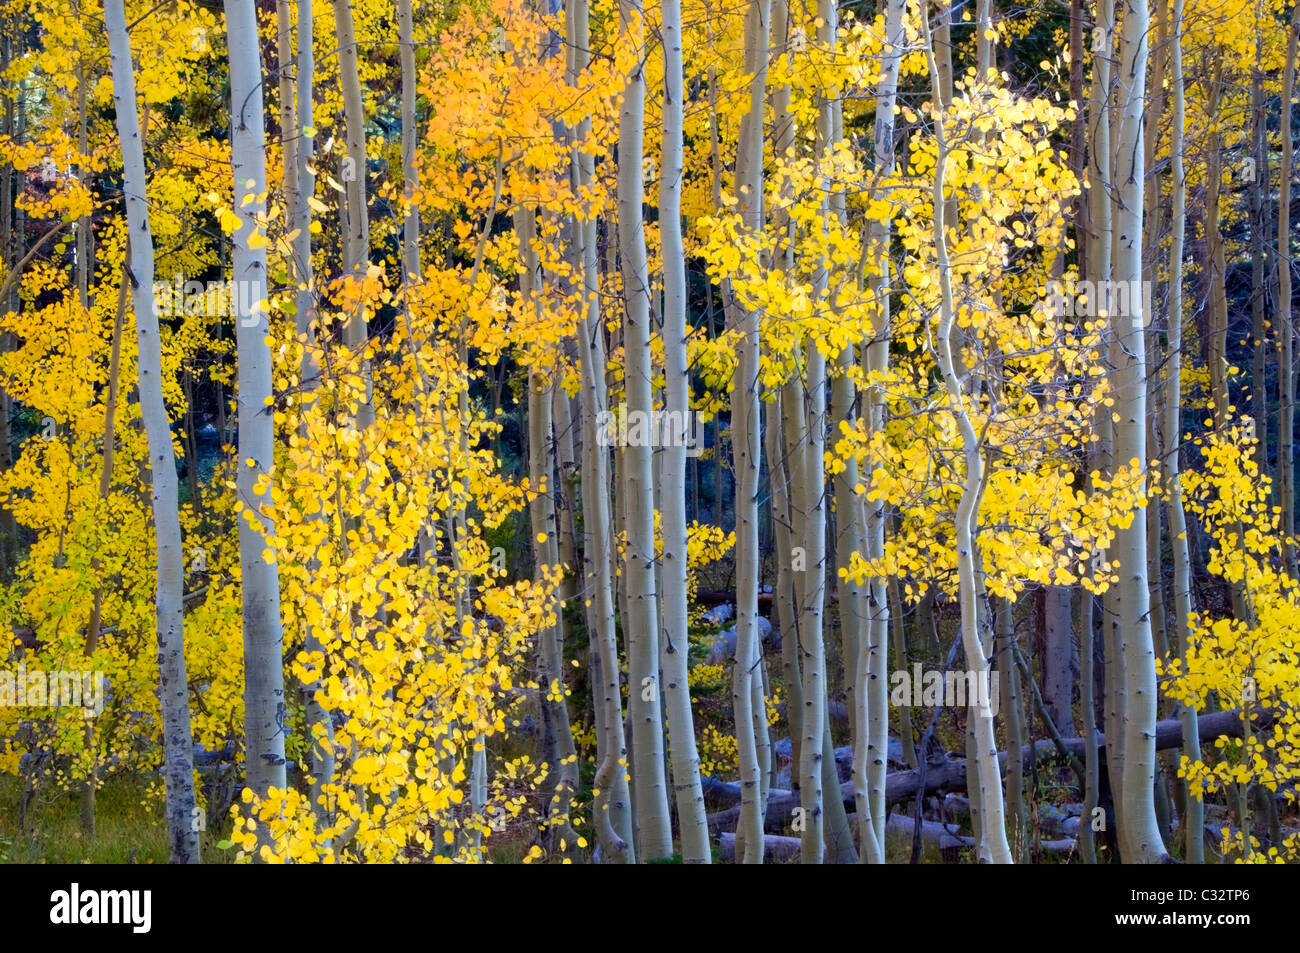 Aspens turn bright yellow and orange in the fall in Lake Tahoe, NV. - Stock Image